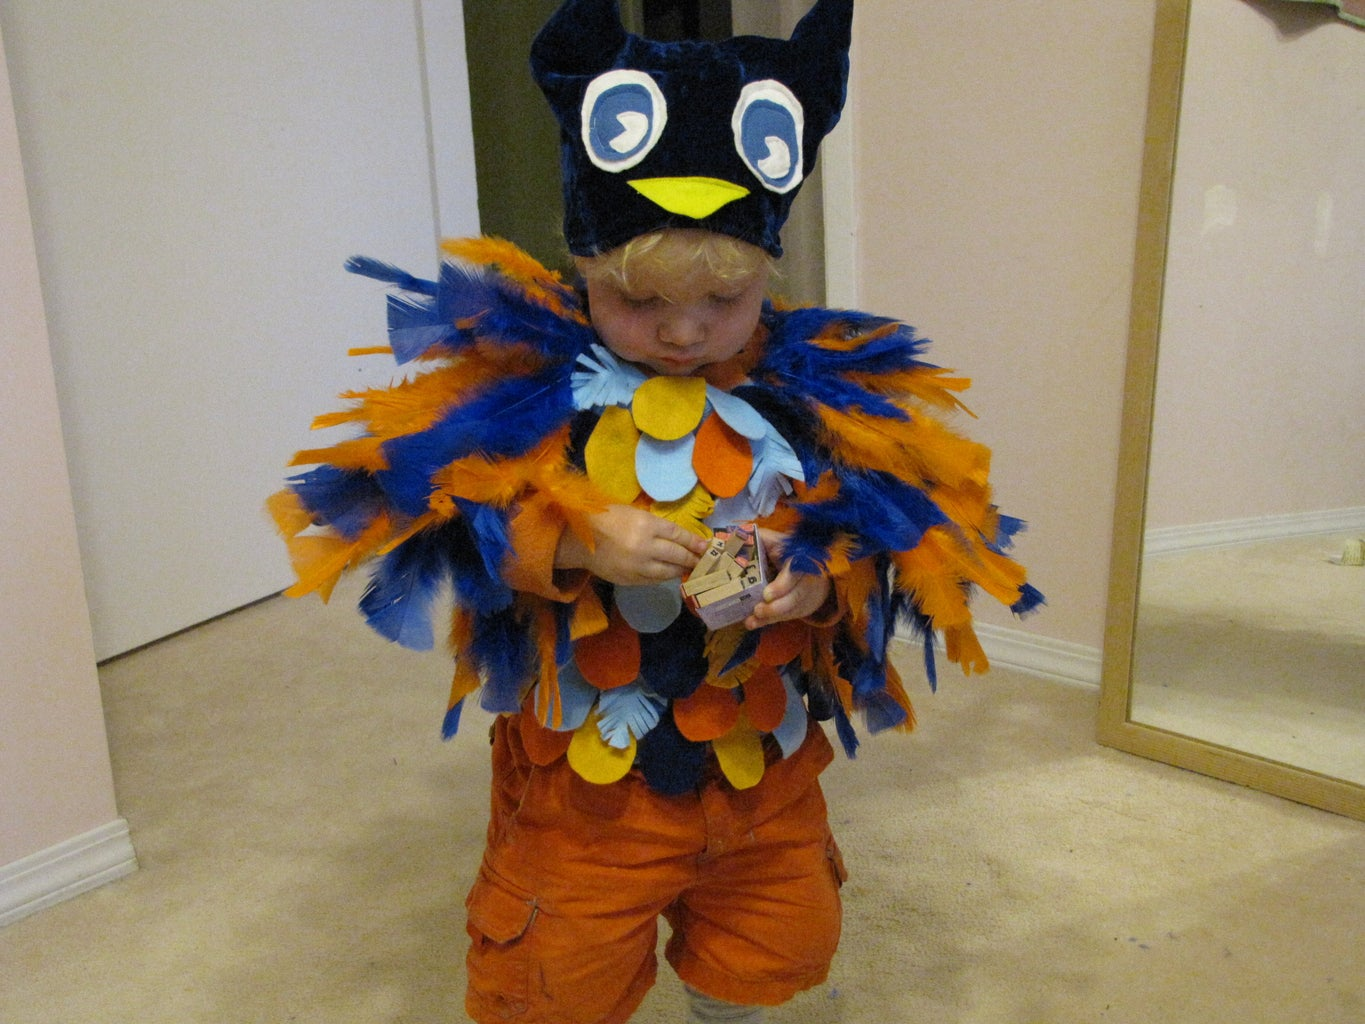 Try This Cute Costume on Your Little One!